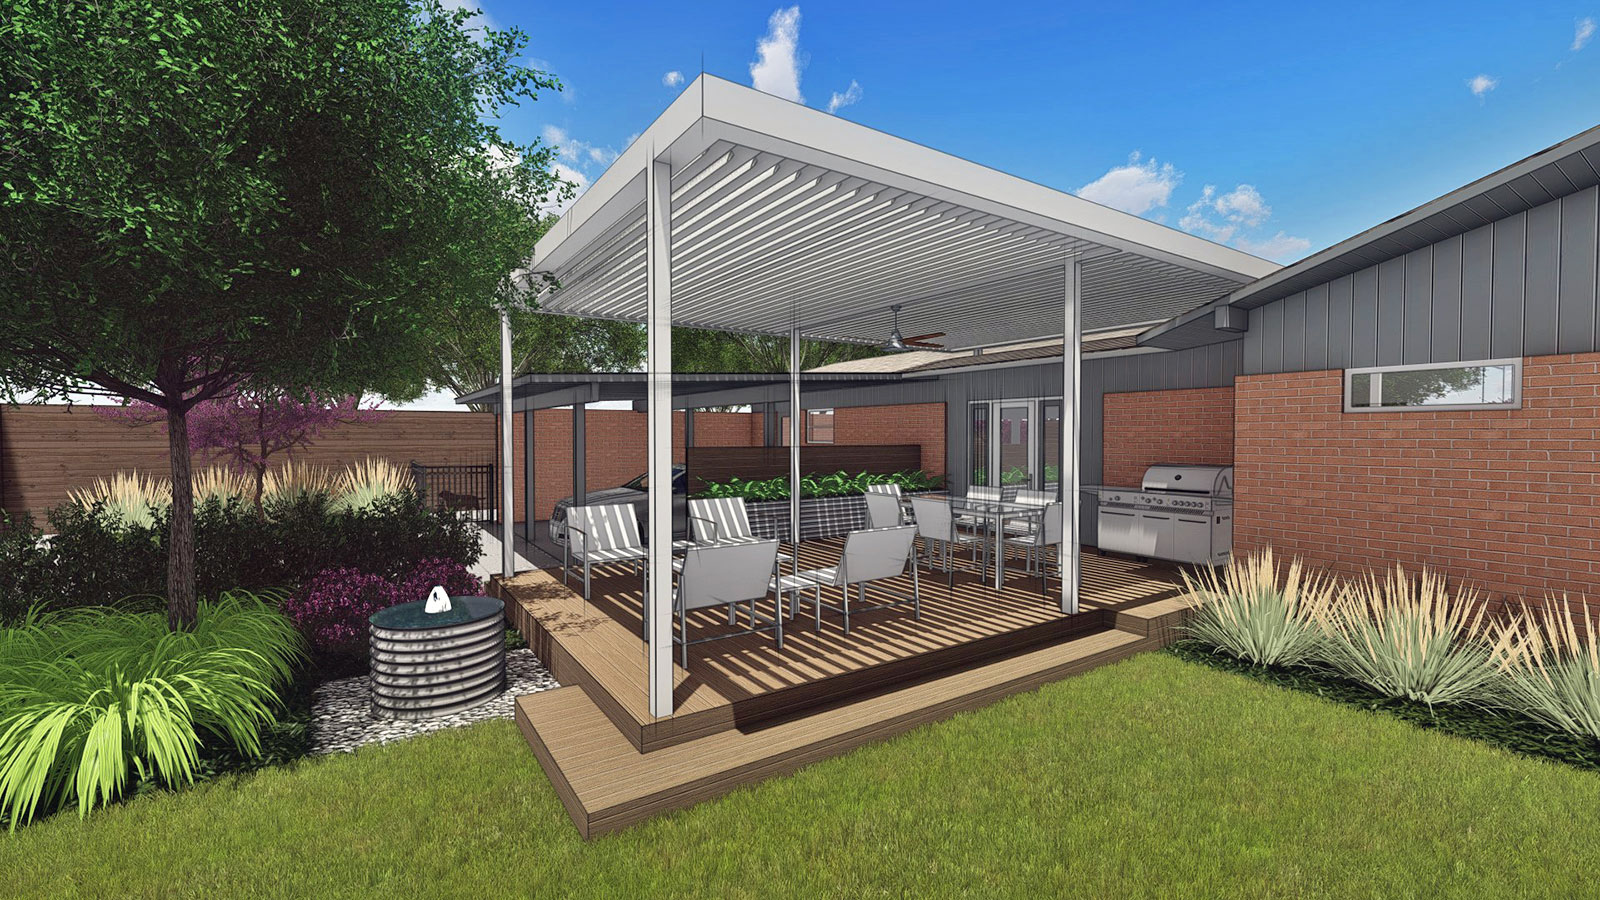 NEW OUTDOOR LIVING & SHADE STRUCTURE